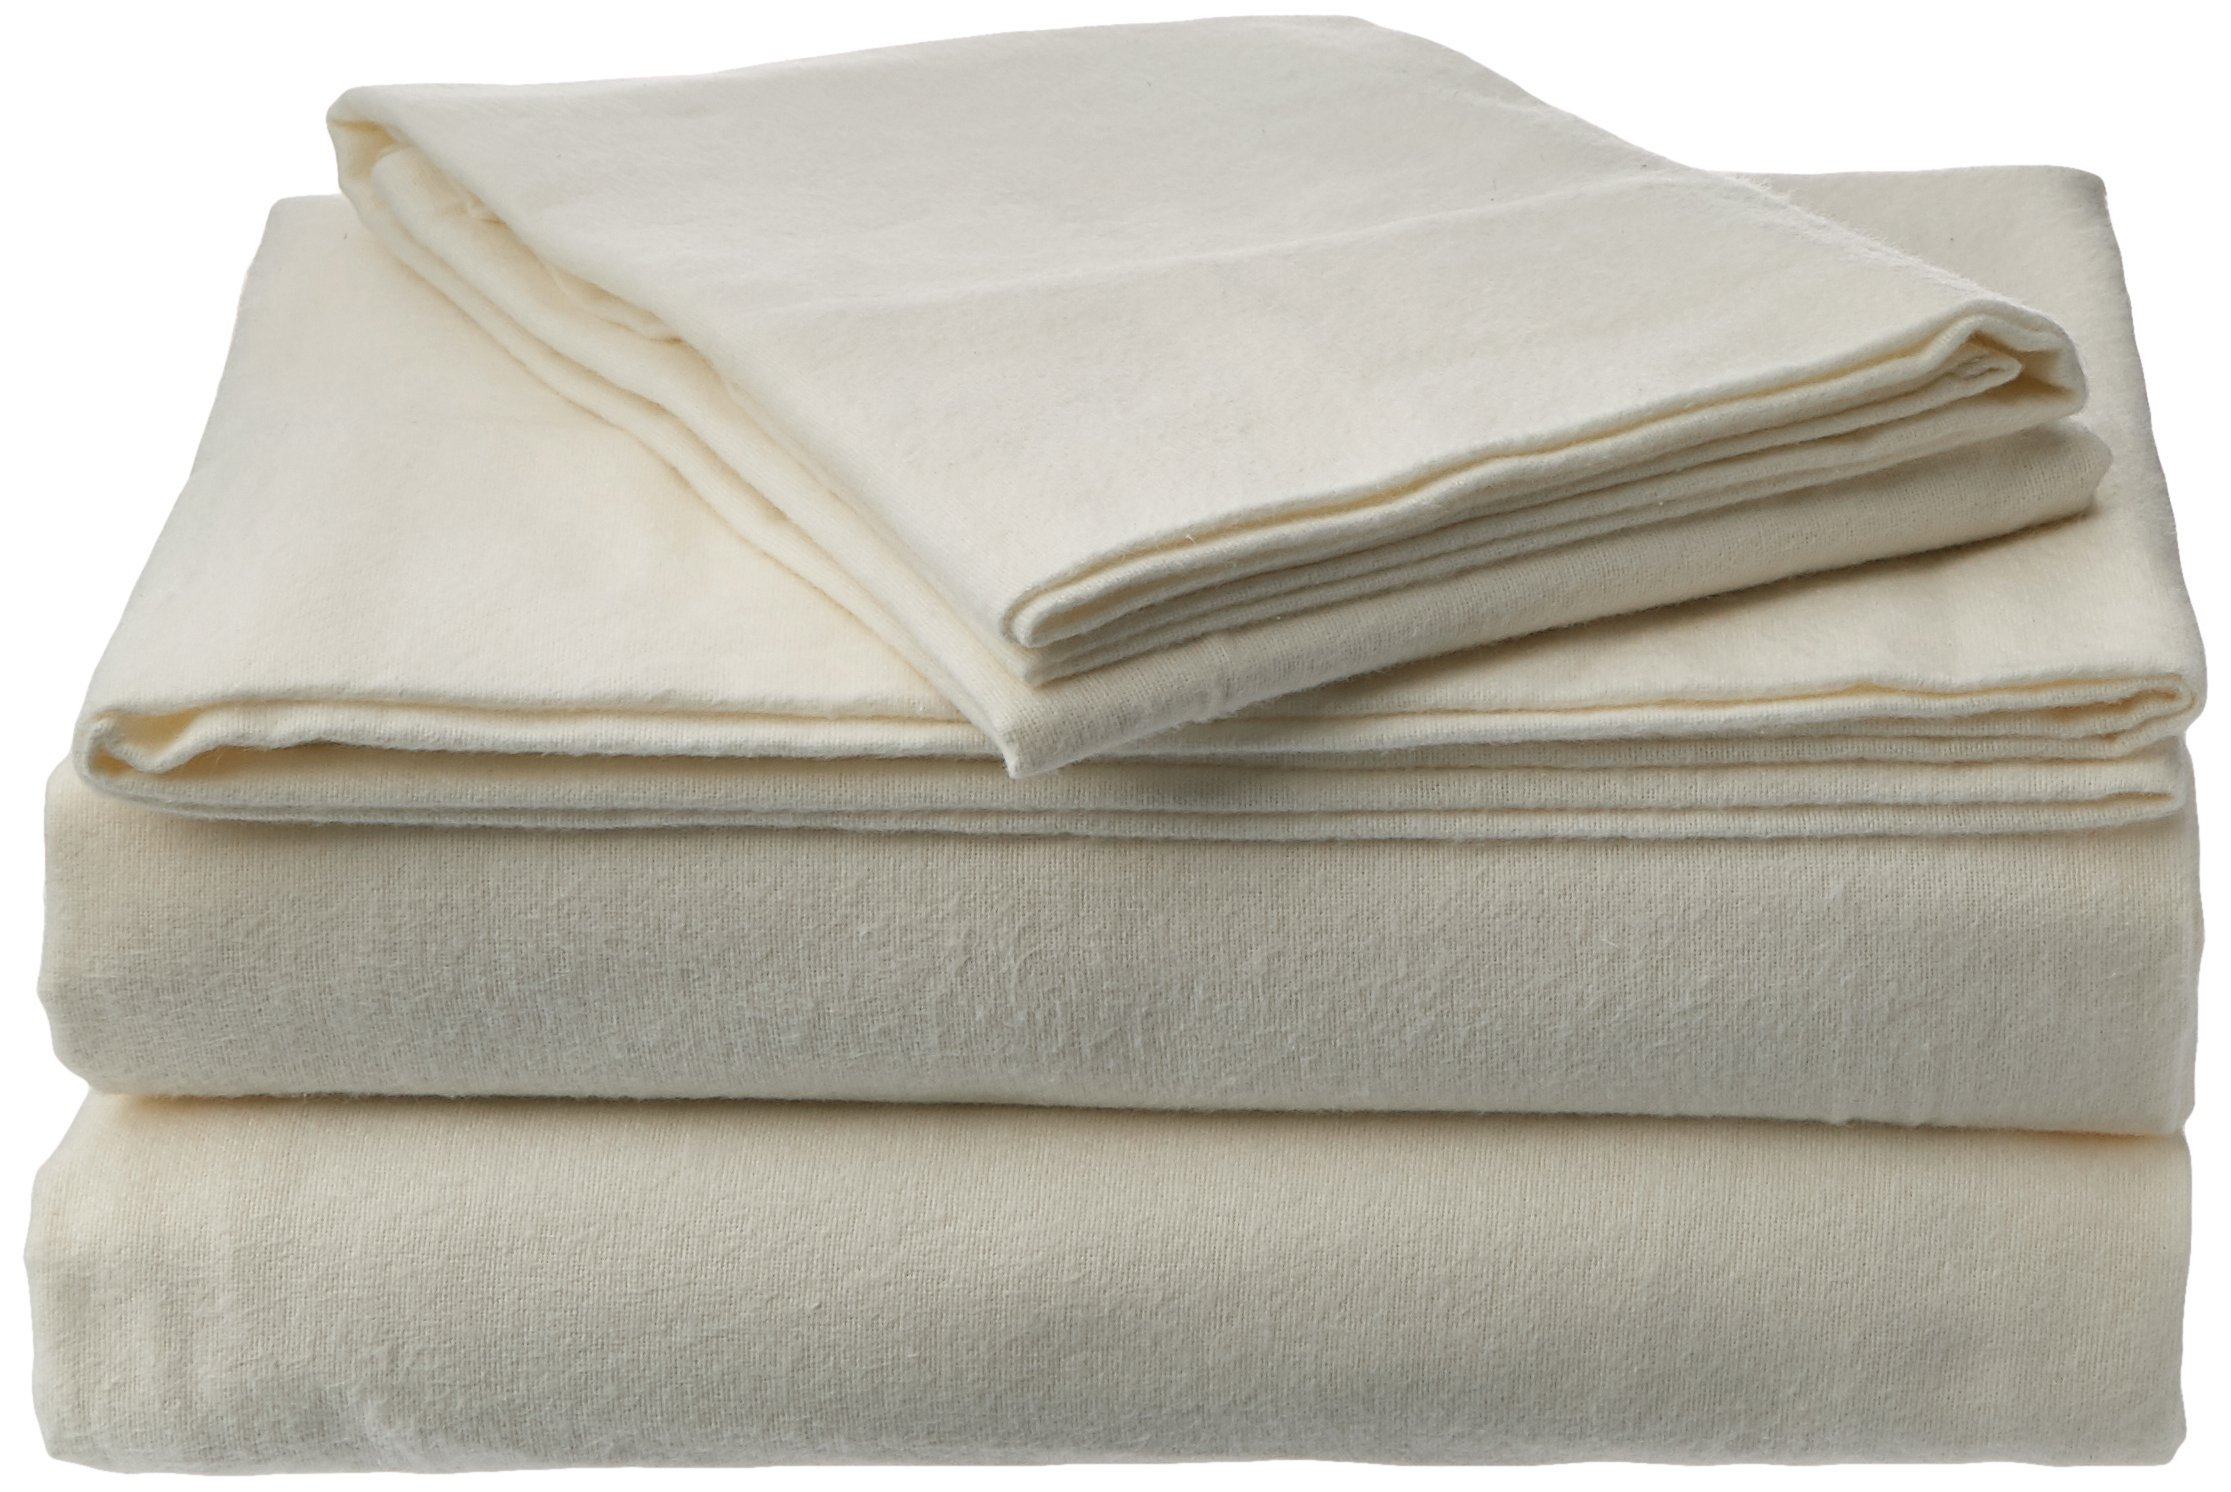 Woven Deluxe Portuguese Flannel Sheets 4 Piece Set